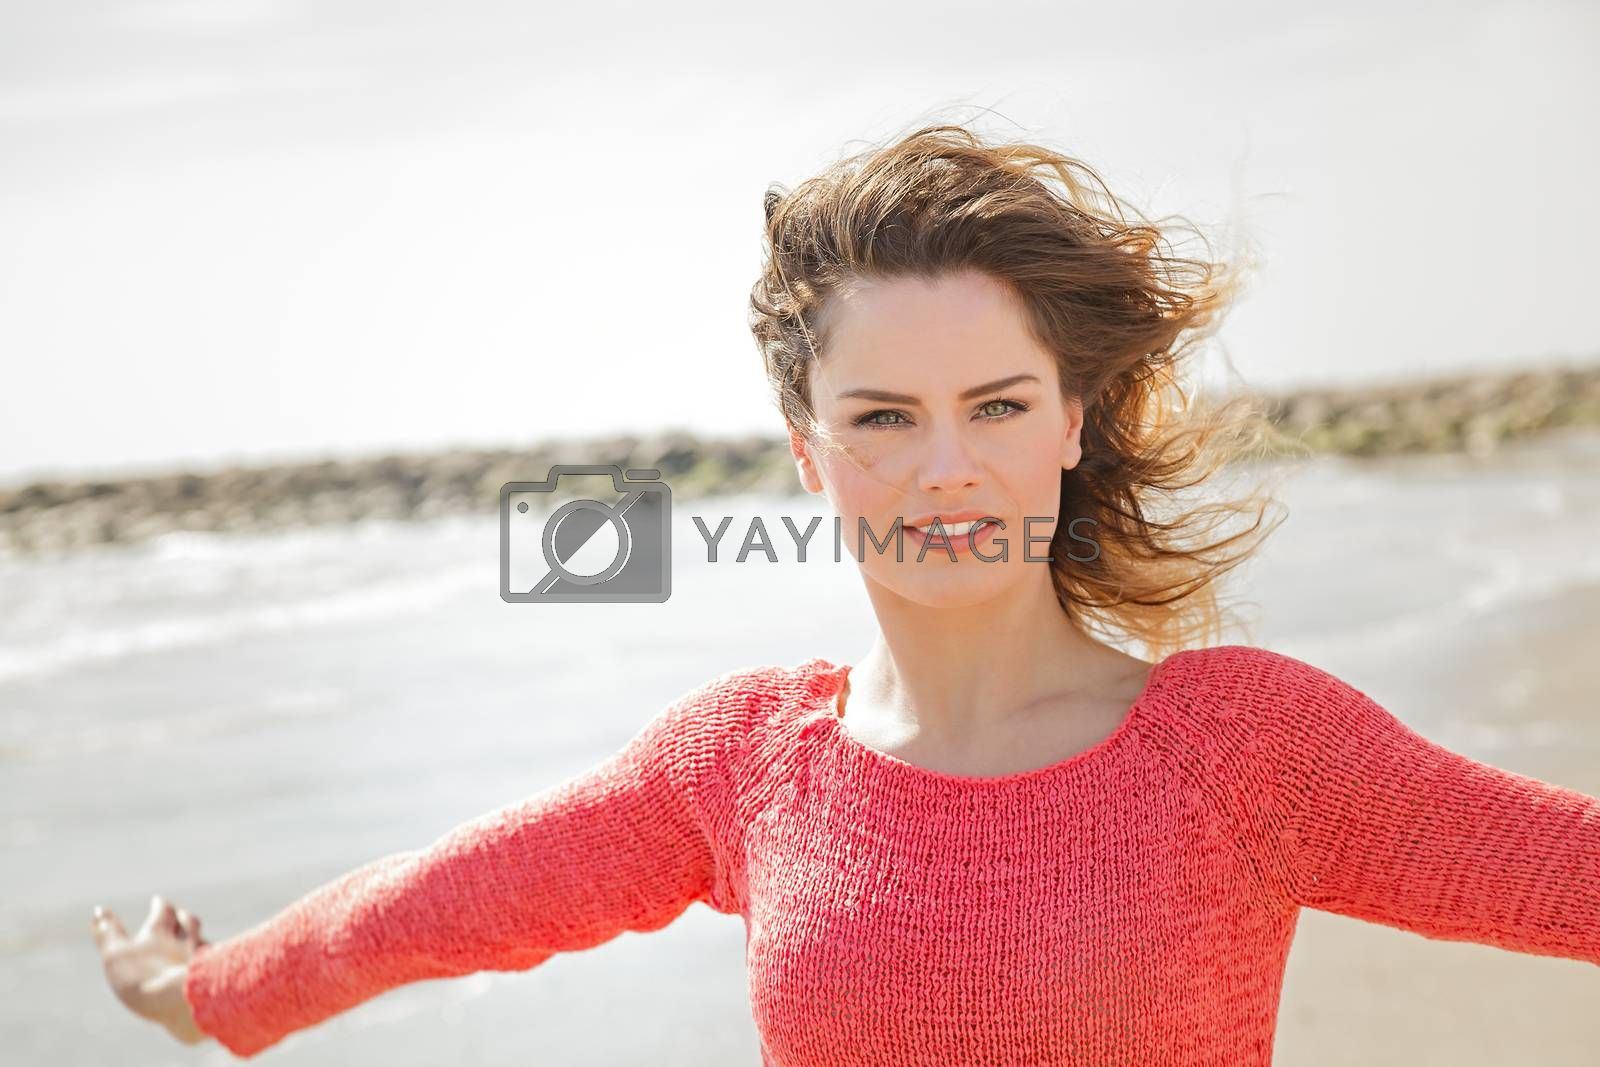 Royalty free image of Beautiful young woman smiling on a windy day at the seaside by alessandroguerriero